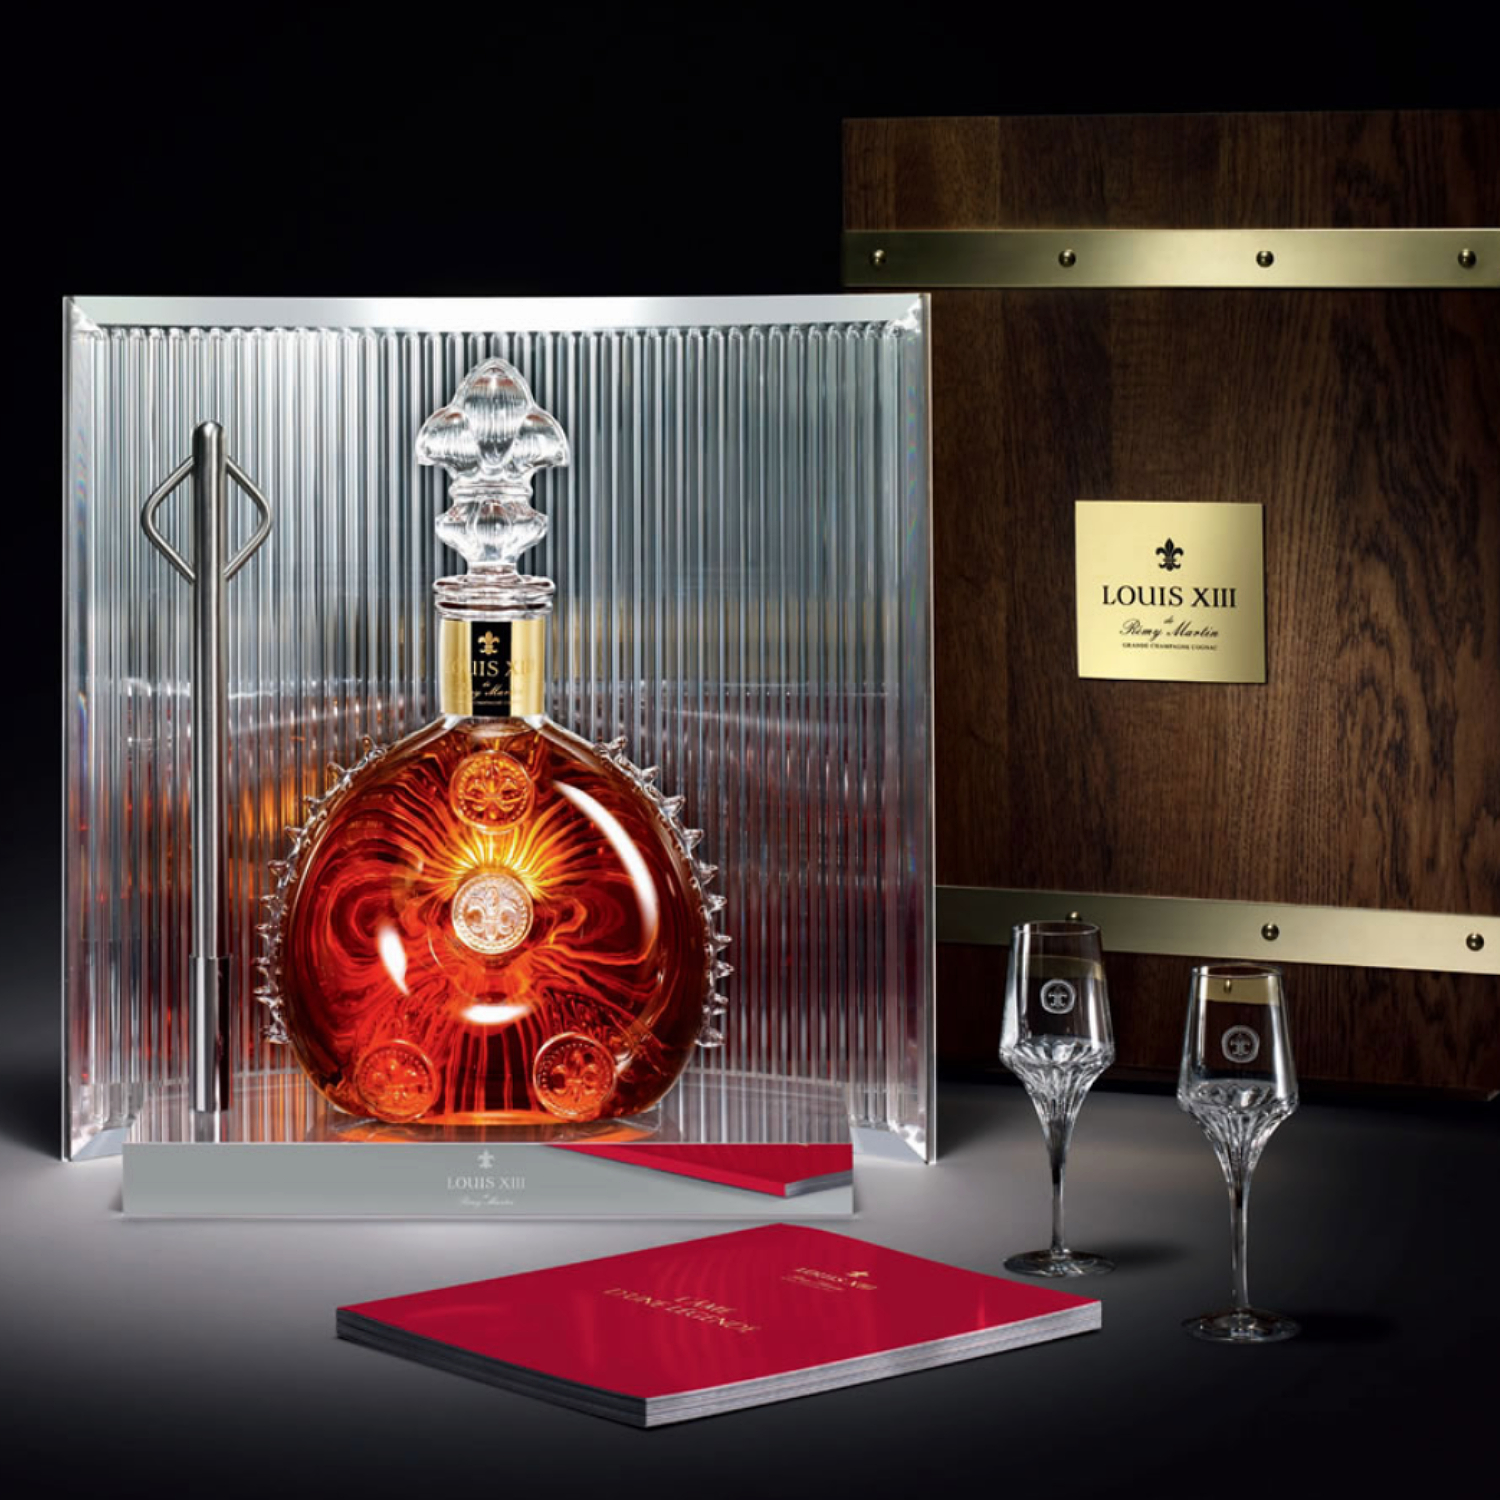 Louis XIII Jeroboam bottle